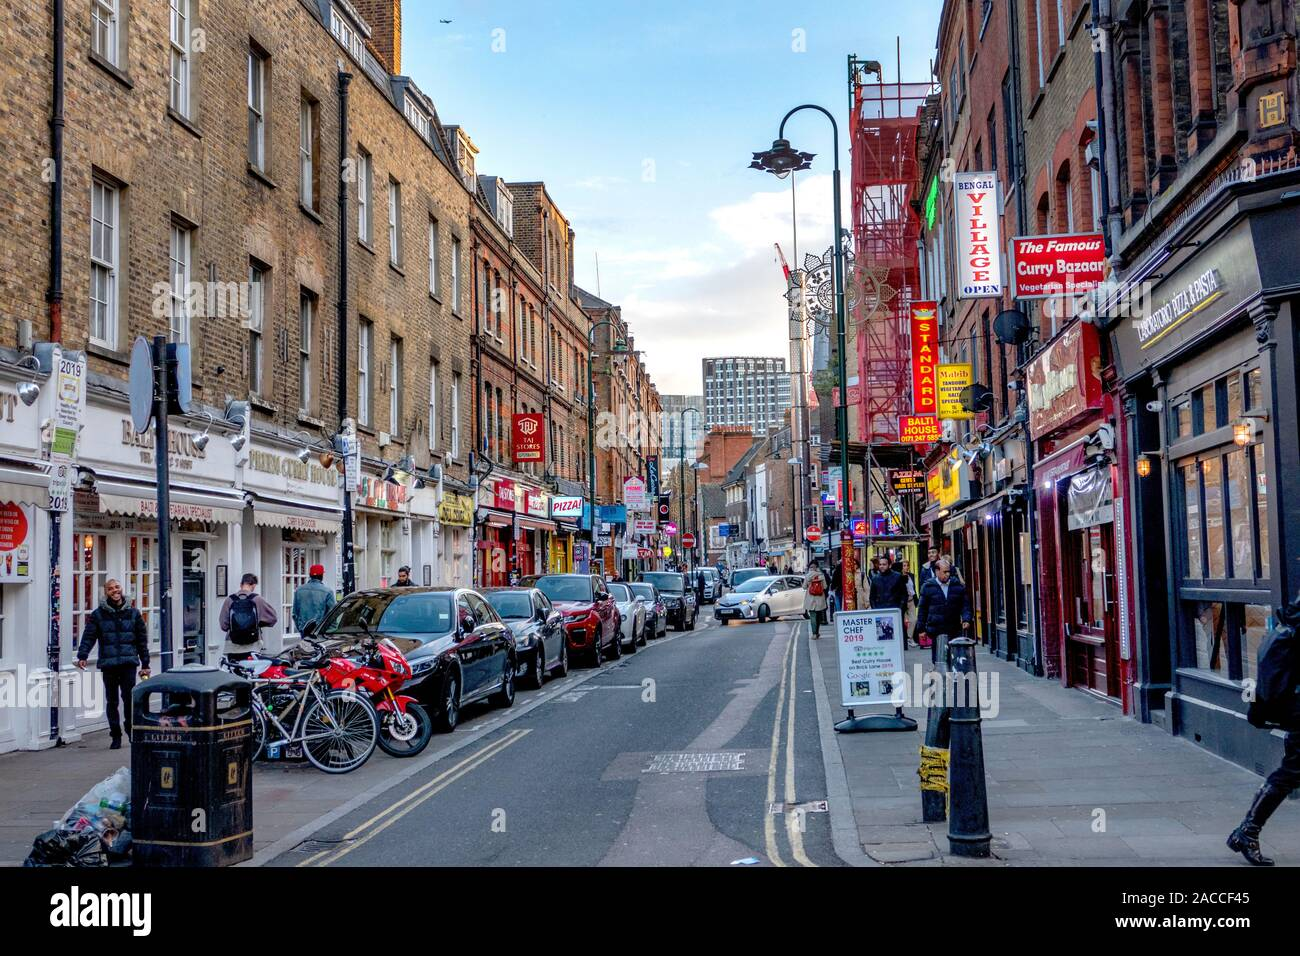 The famous Brick Lane street in the East End of London, England. The lane is also known as Banglatown and is a centre for the Bangladeshi community. Stock Photo